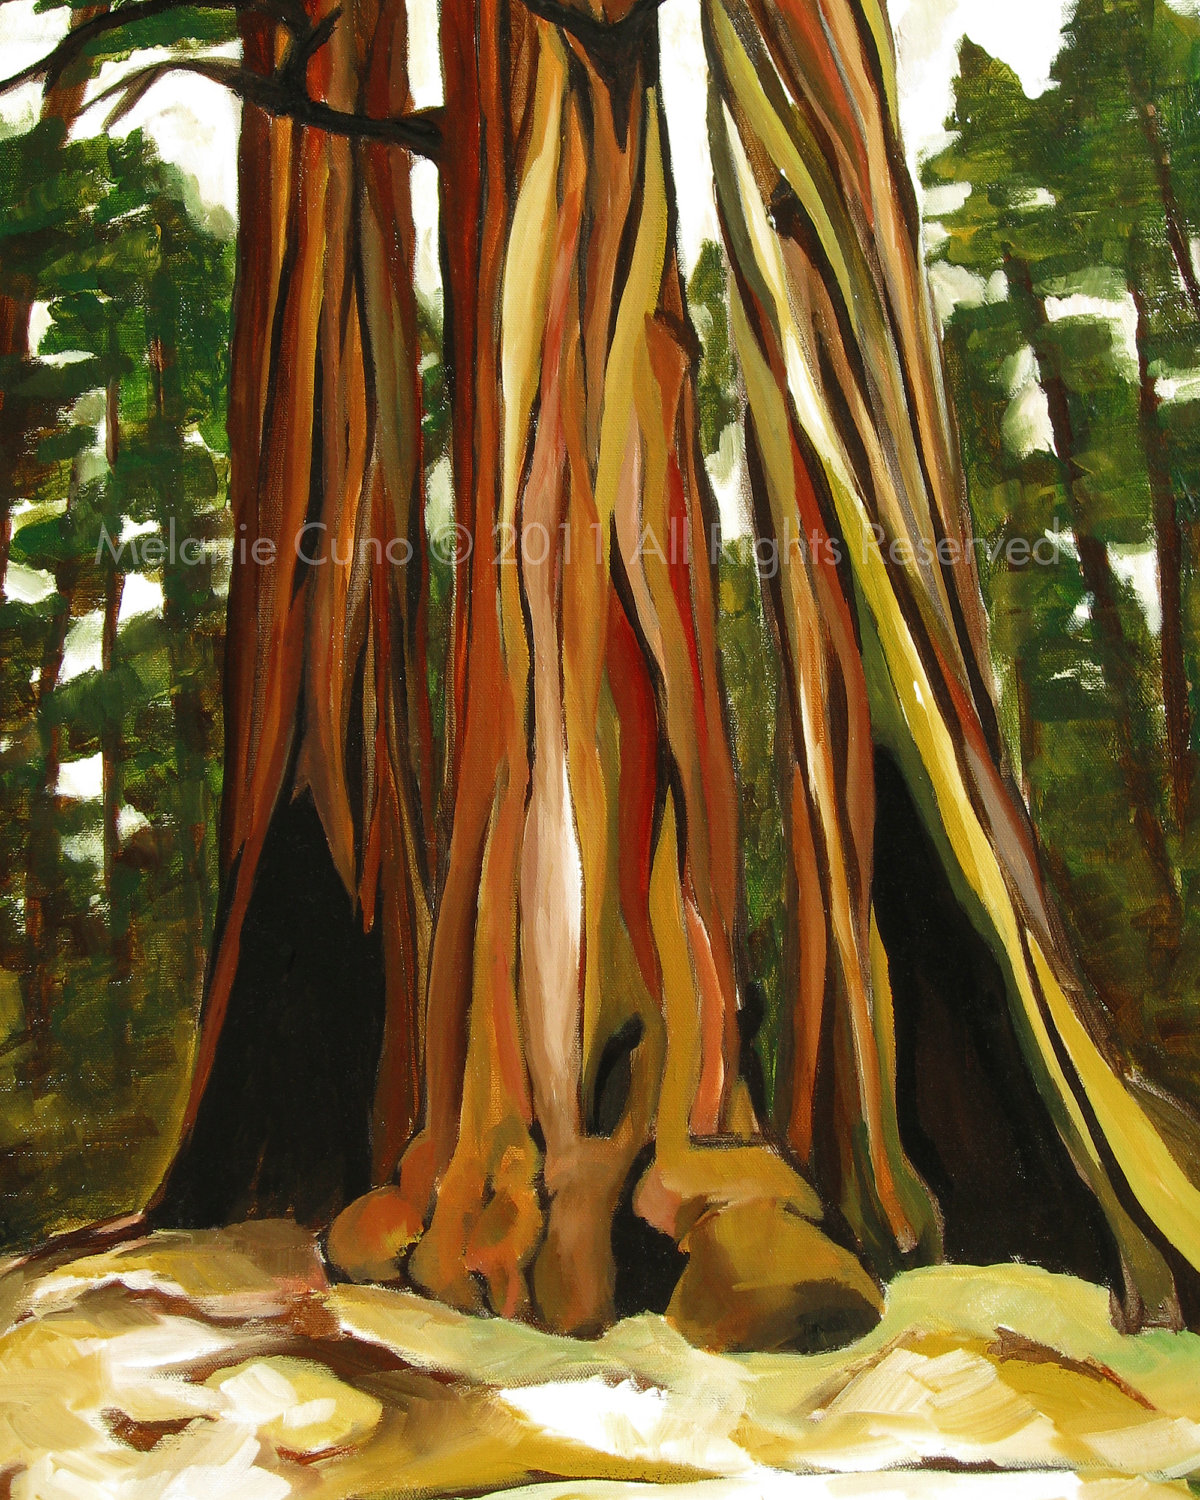 Redwood Trees giclee print of original acrylic painting.